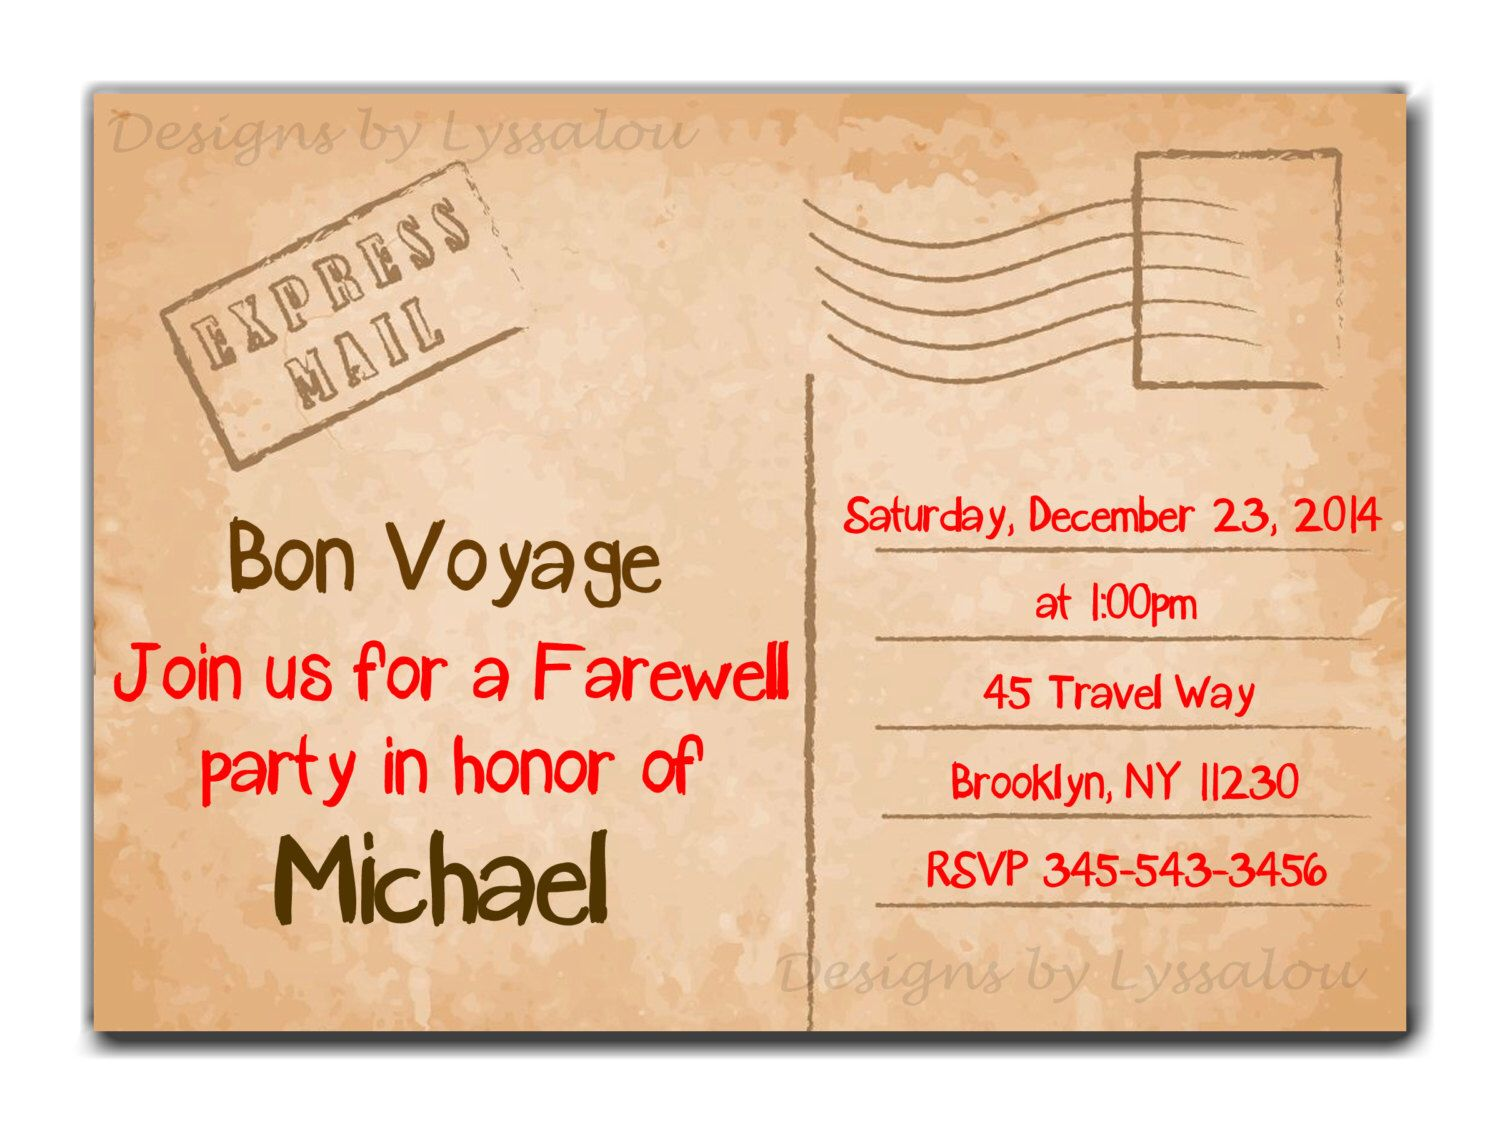 Travel Farewell Party Invitation Bon Voyage Going Away Party - Party invitation template: going away party invitation templates